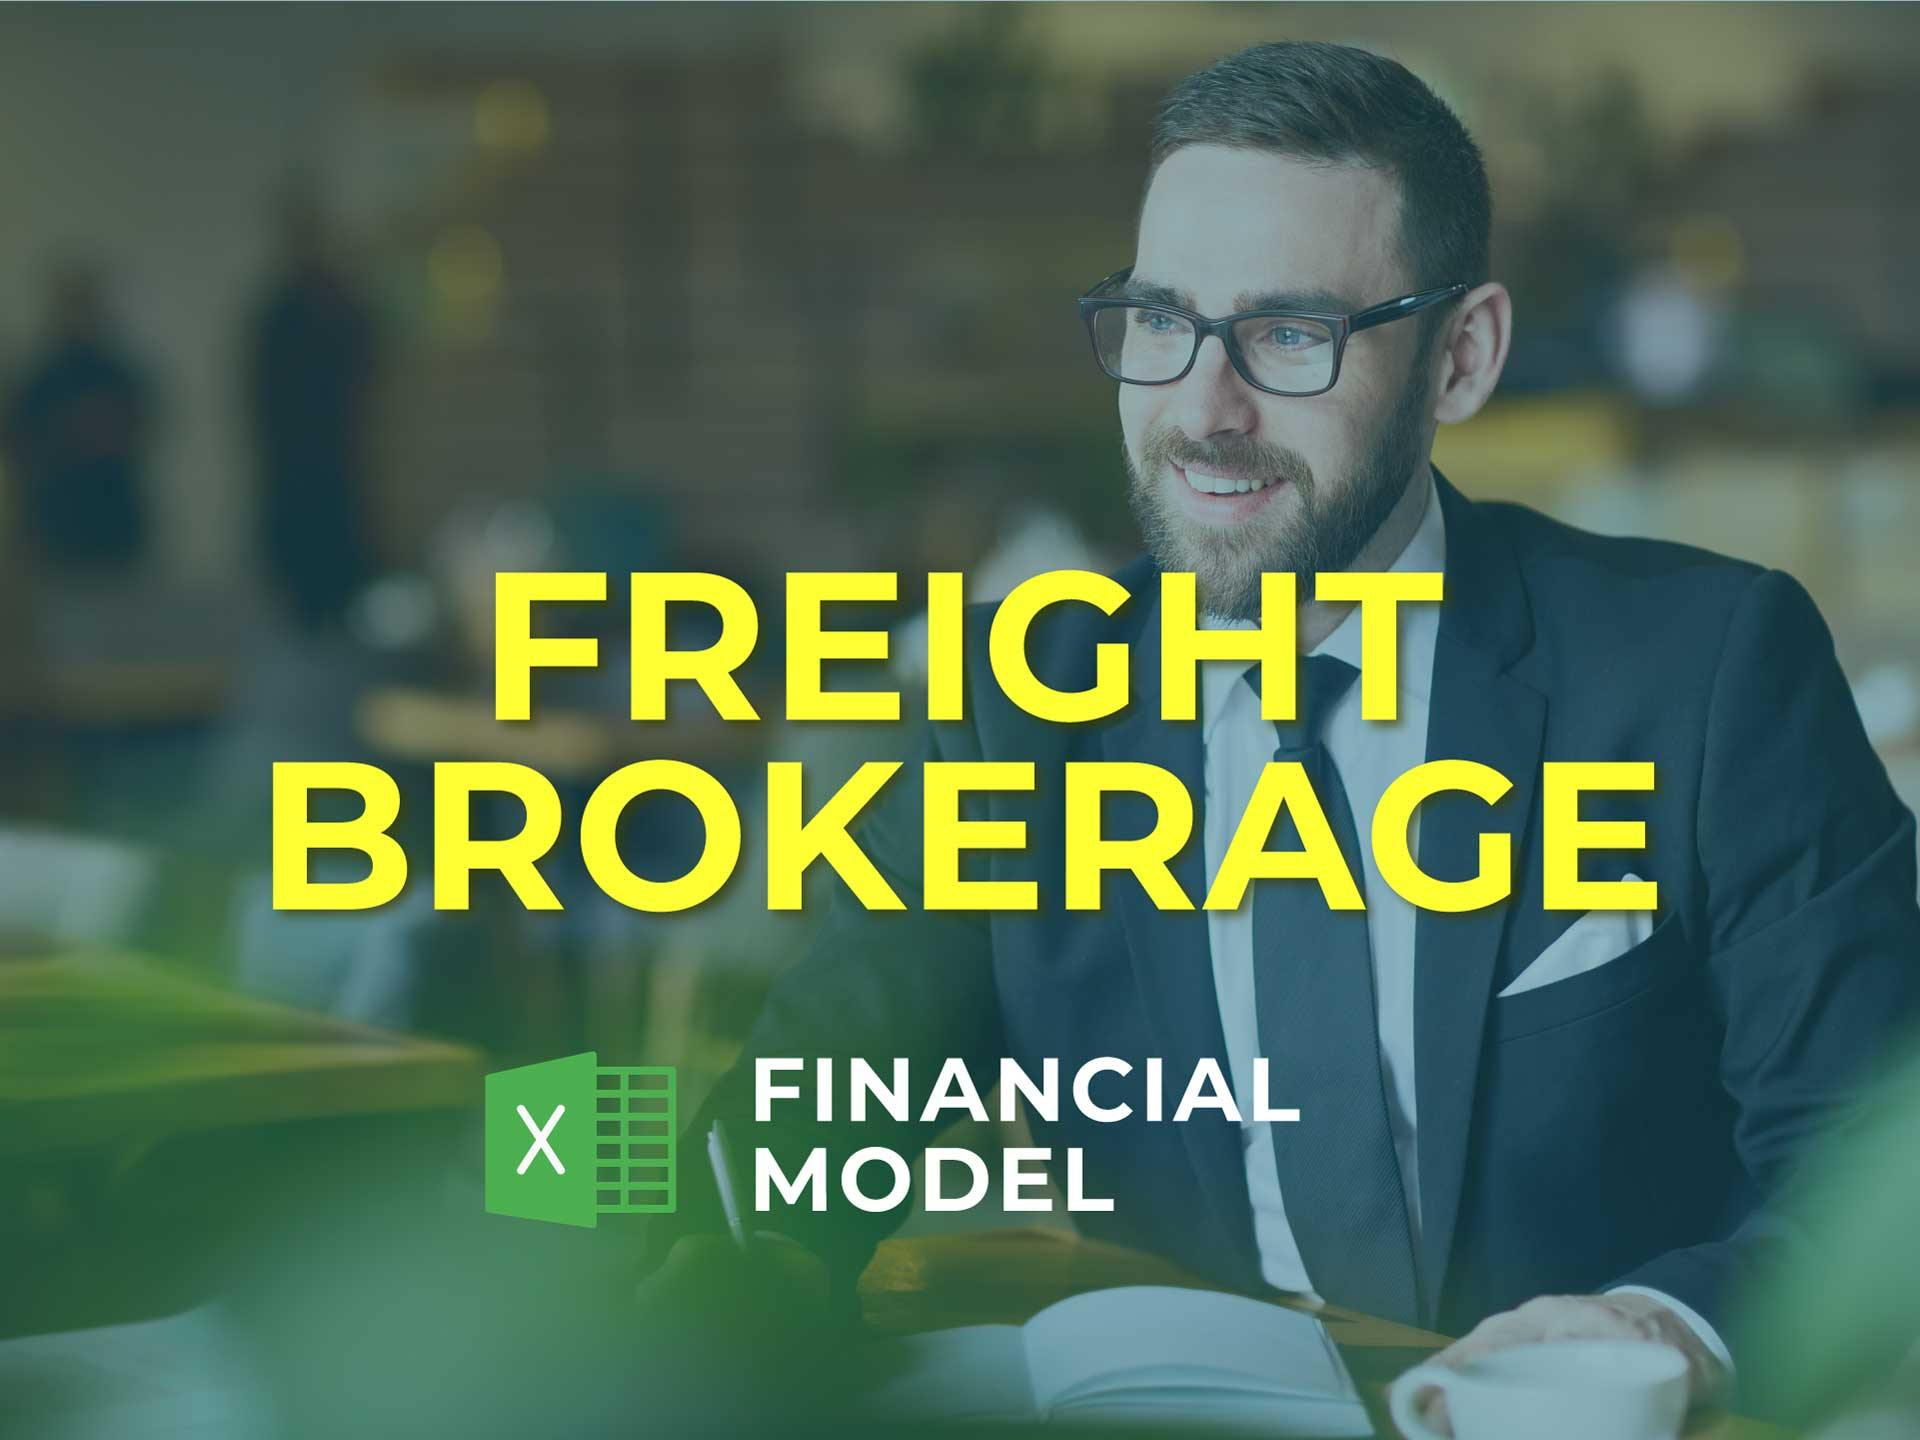 Freight Brokerage